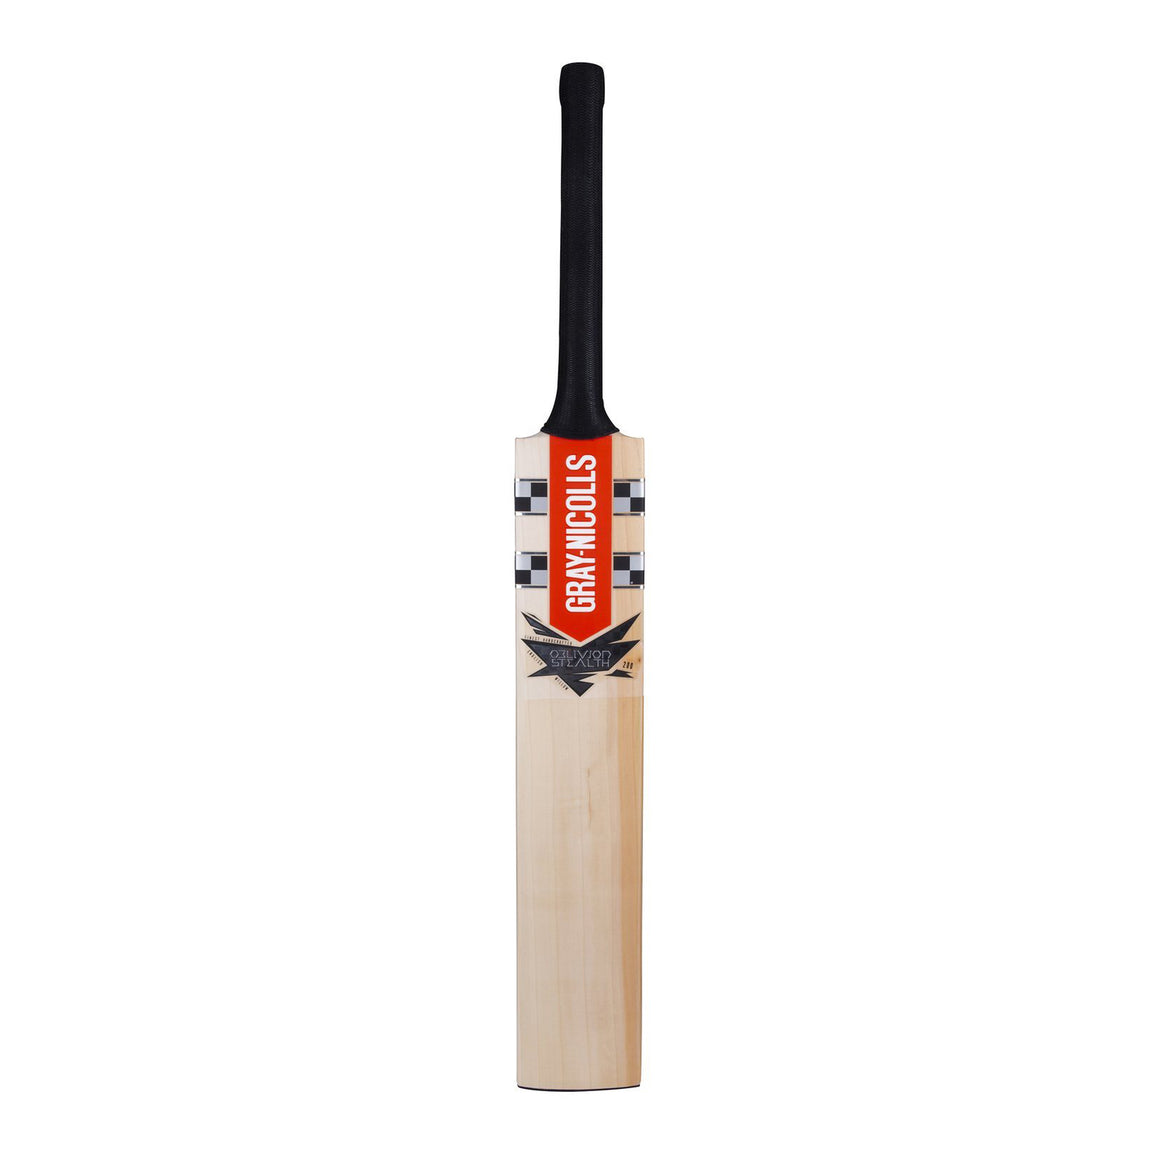 Oblivion Stealth 200 Bat for Kids